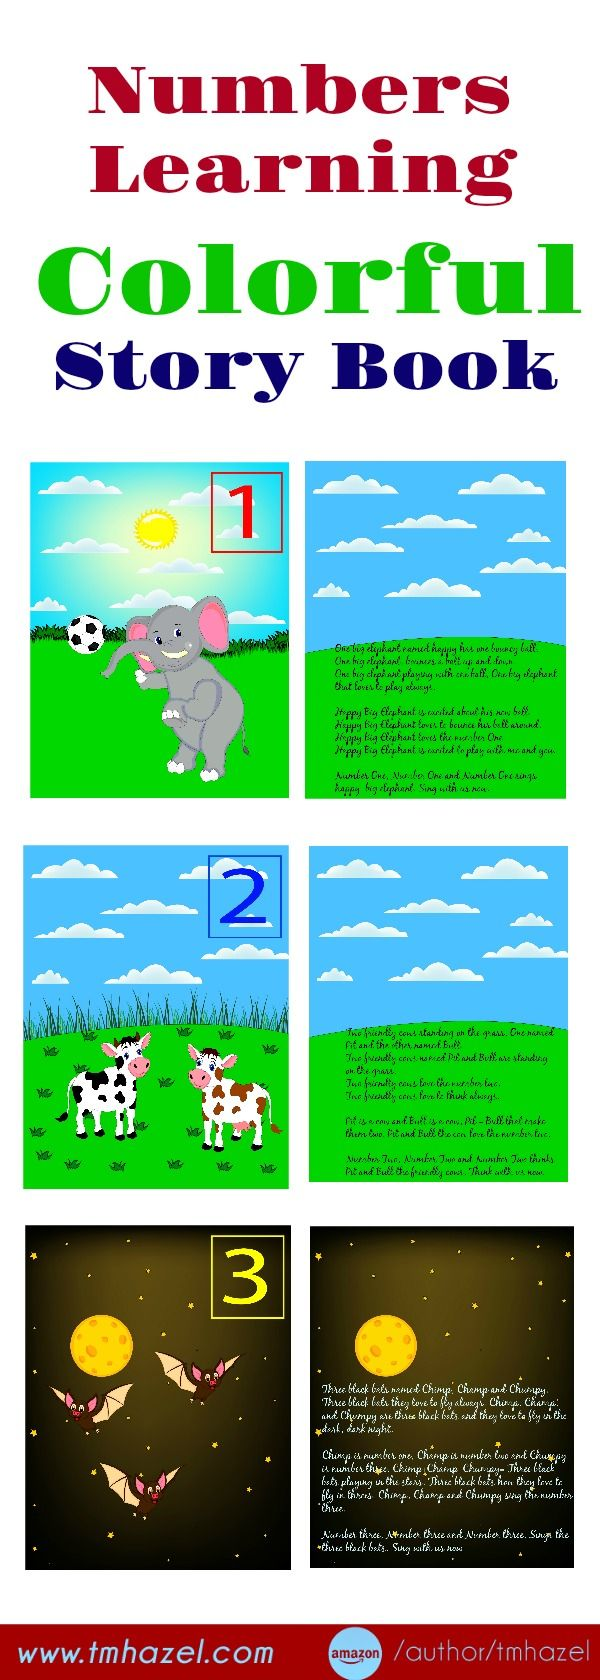 Numbers Learning Colorful Story Book!!! Numbers, preschool ...